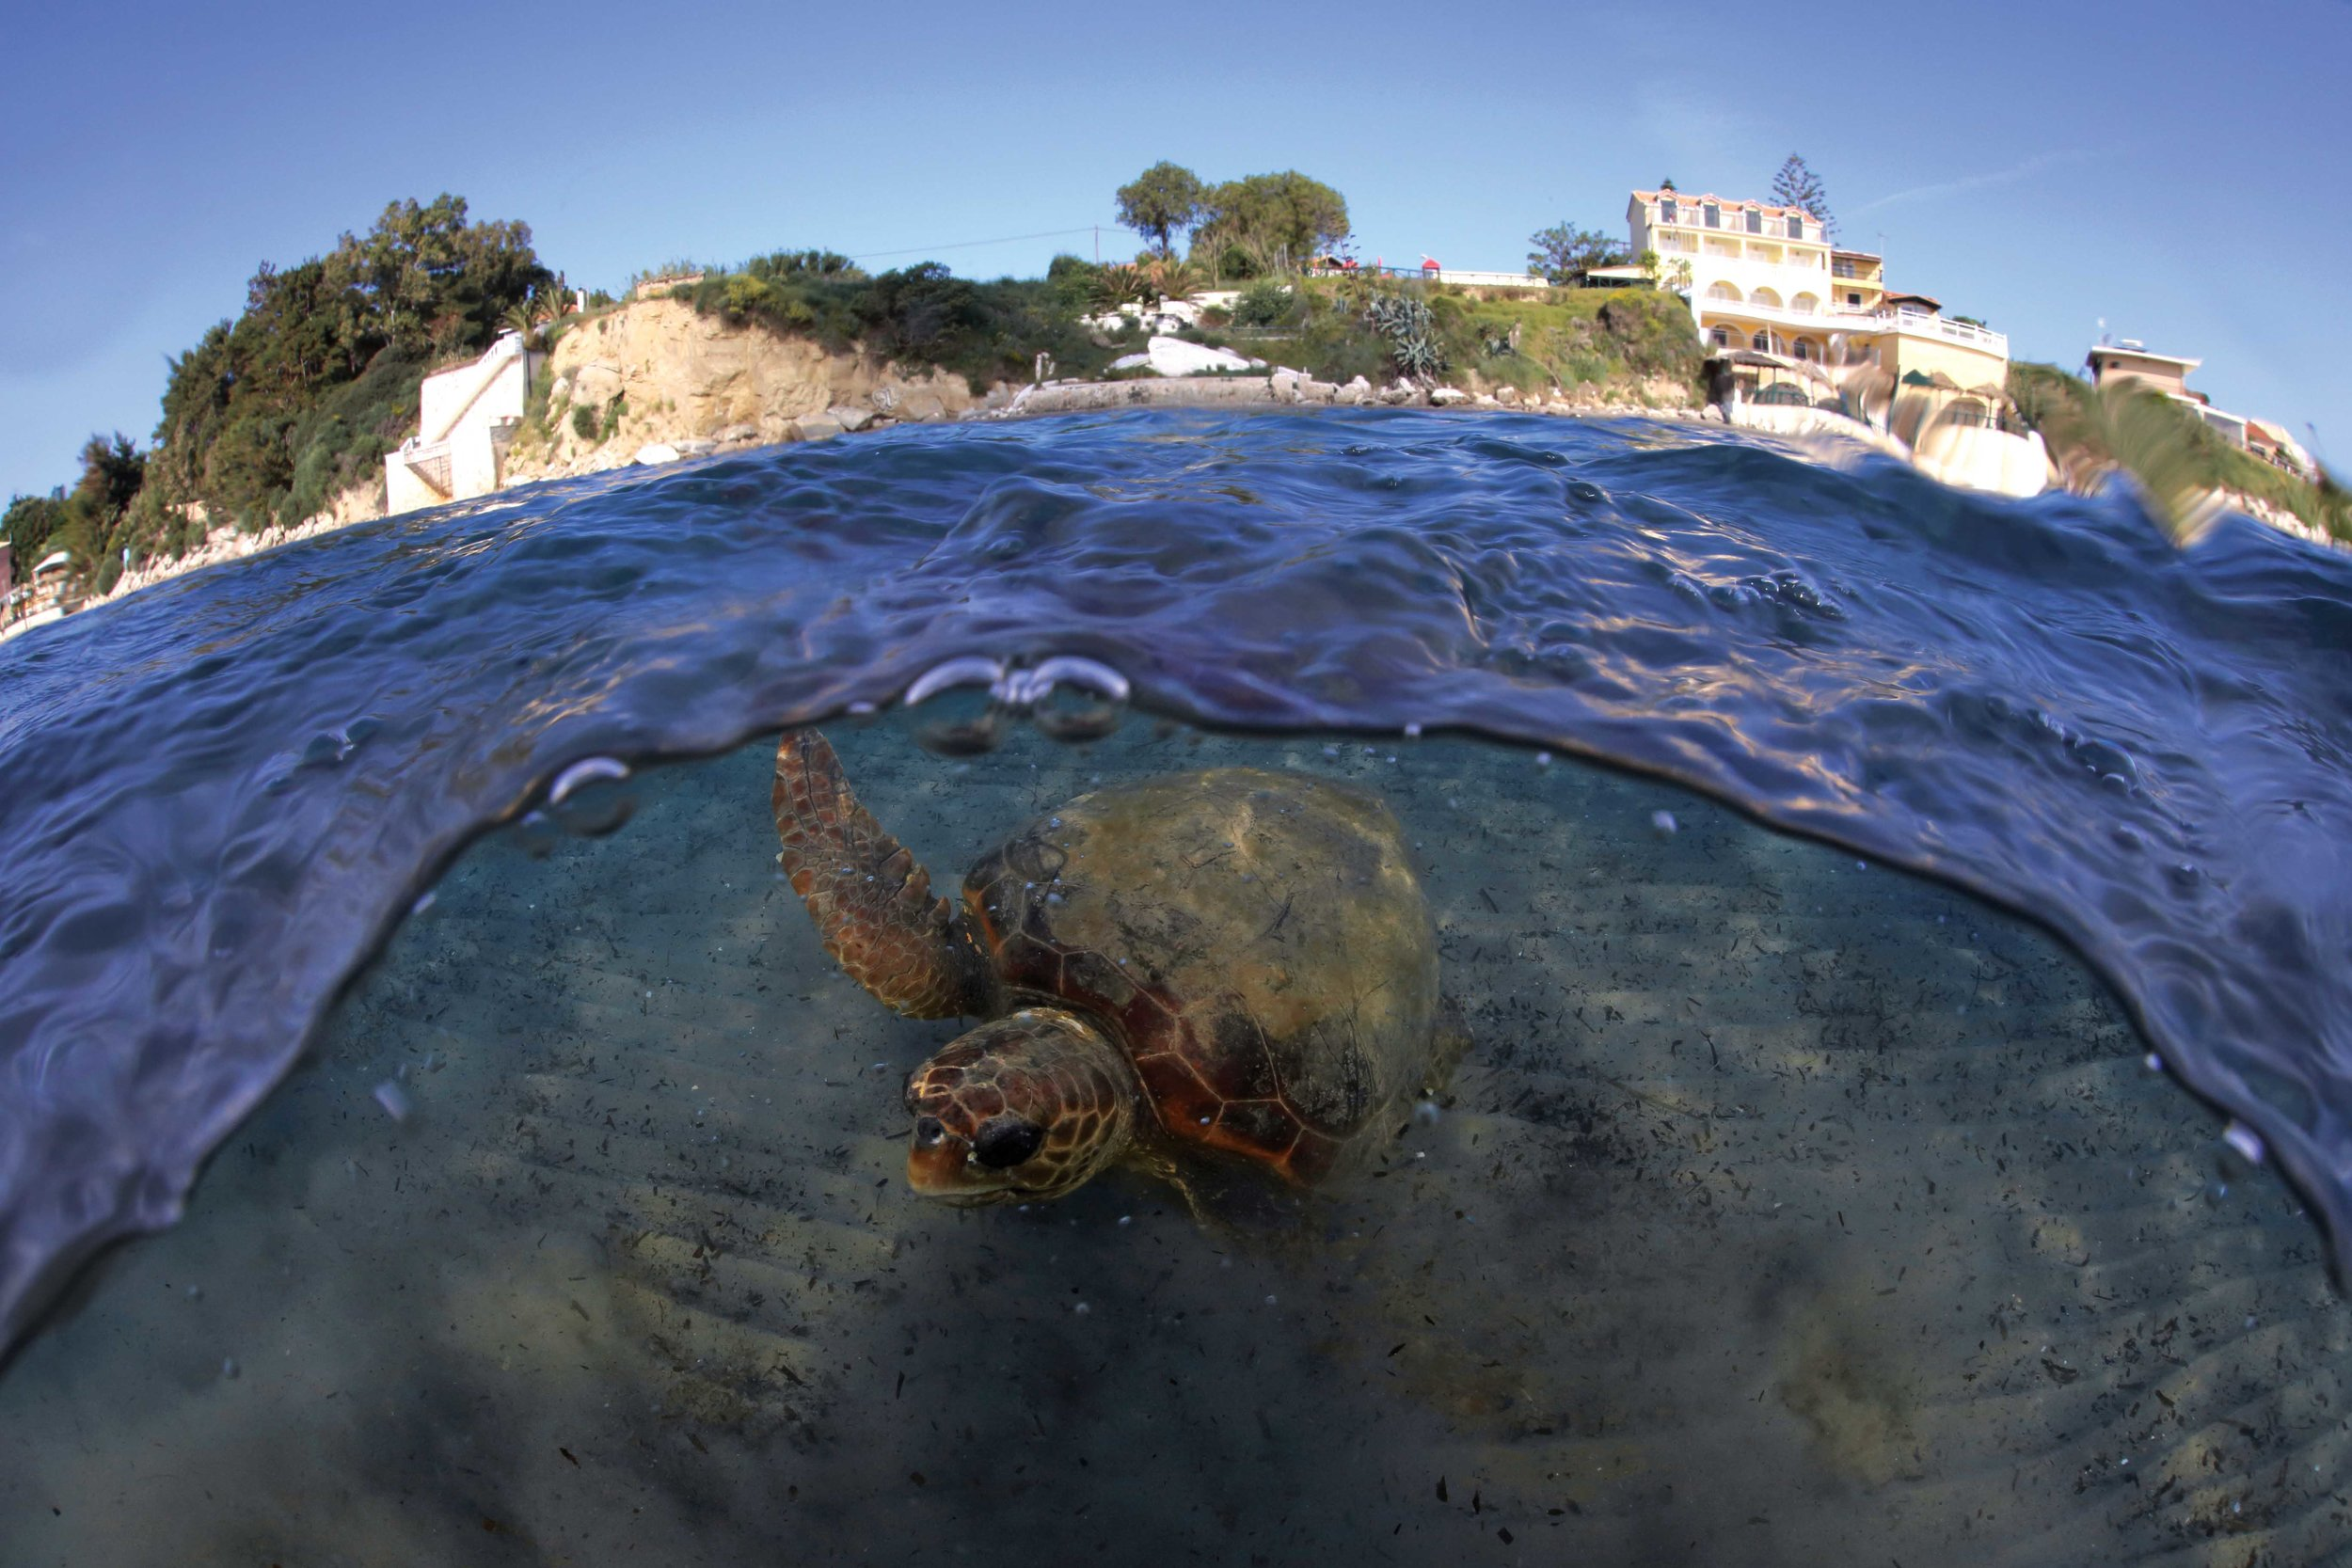 A loggerhead turtle swims near seaside homes on the coast of Greece. With more than 150 million coastal residents and one of the world's highest levels of tourism, the Mediterranean Sea is an environment profoundly shaped by people. © KOSTAS PAPAFITSOROS